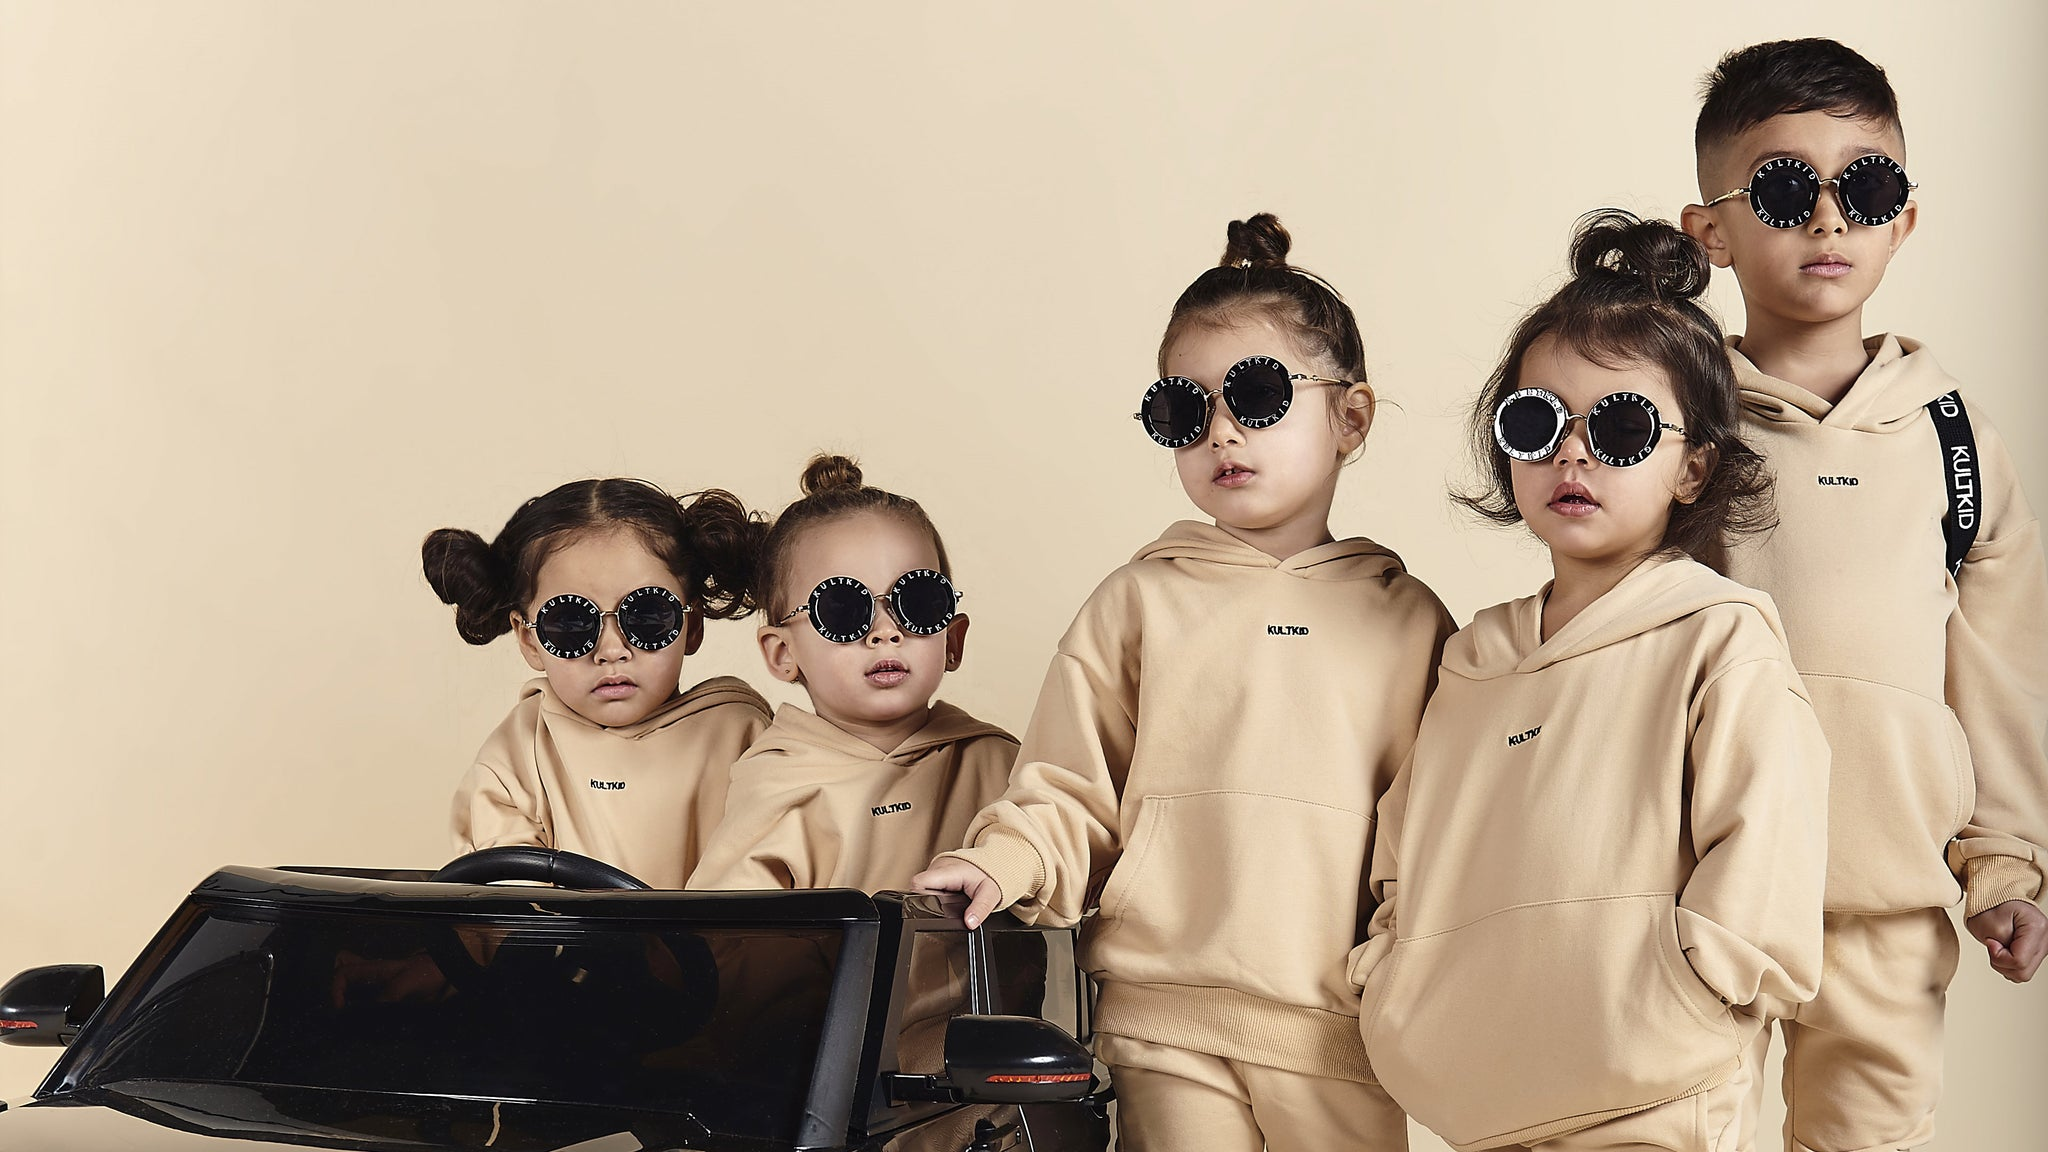 5 Kids' Fashion Trends To Watch Out For - KULTKID